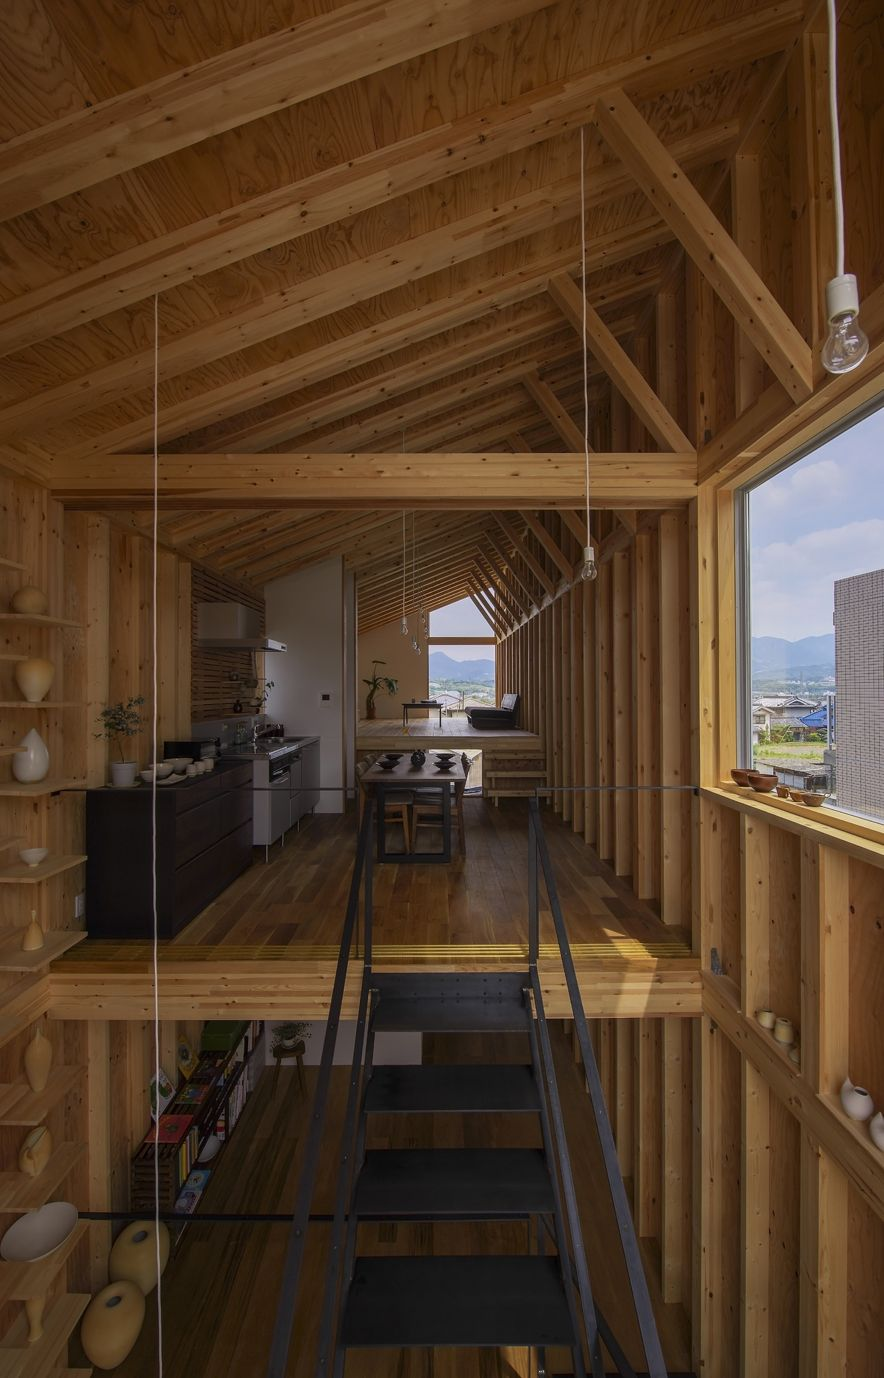 Image 9 of 23 from gallery of House for Pottery Festival / Office for Environment Architecture. Photograph by Yuko Tada